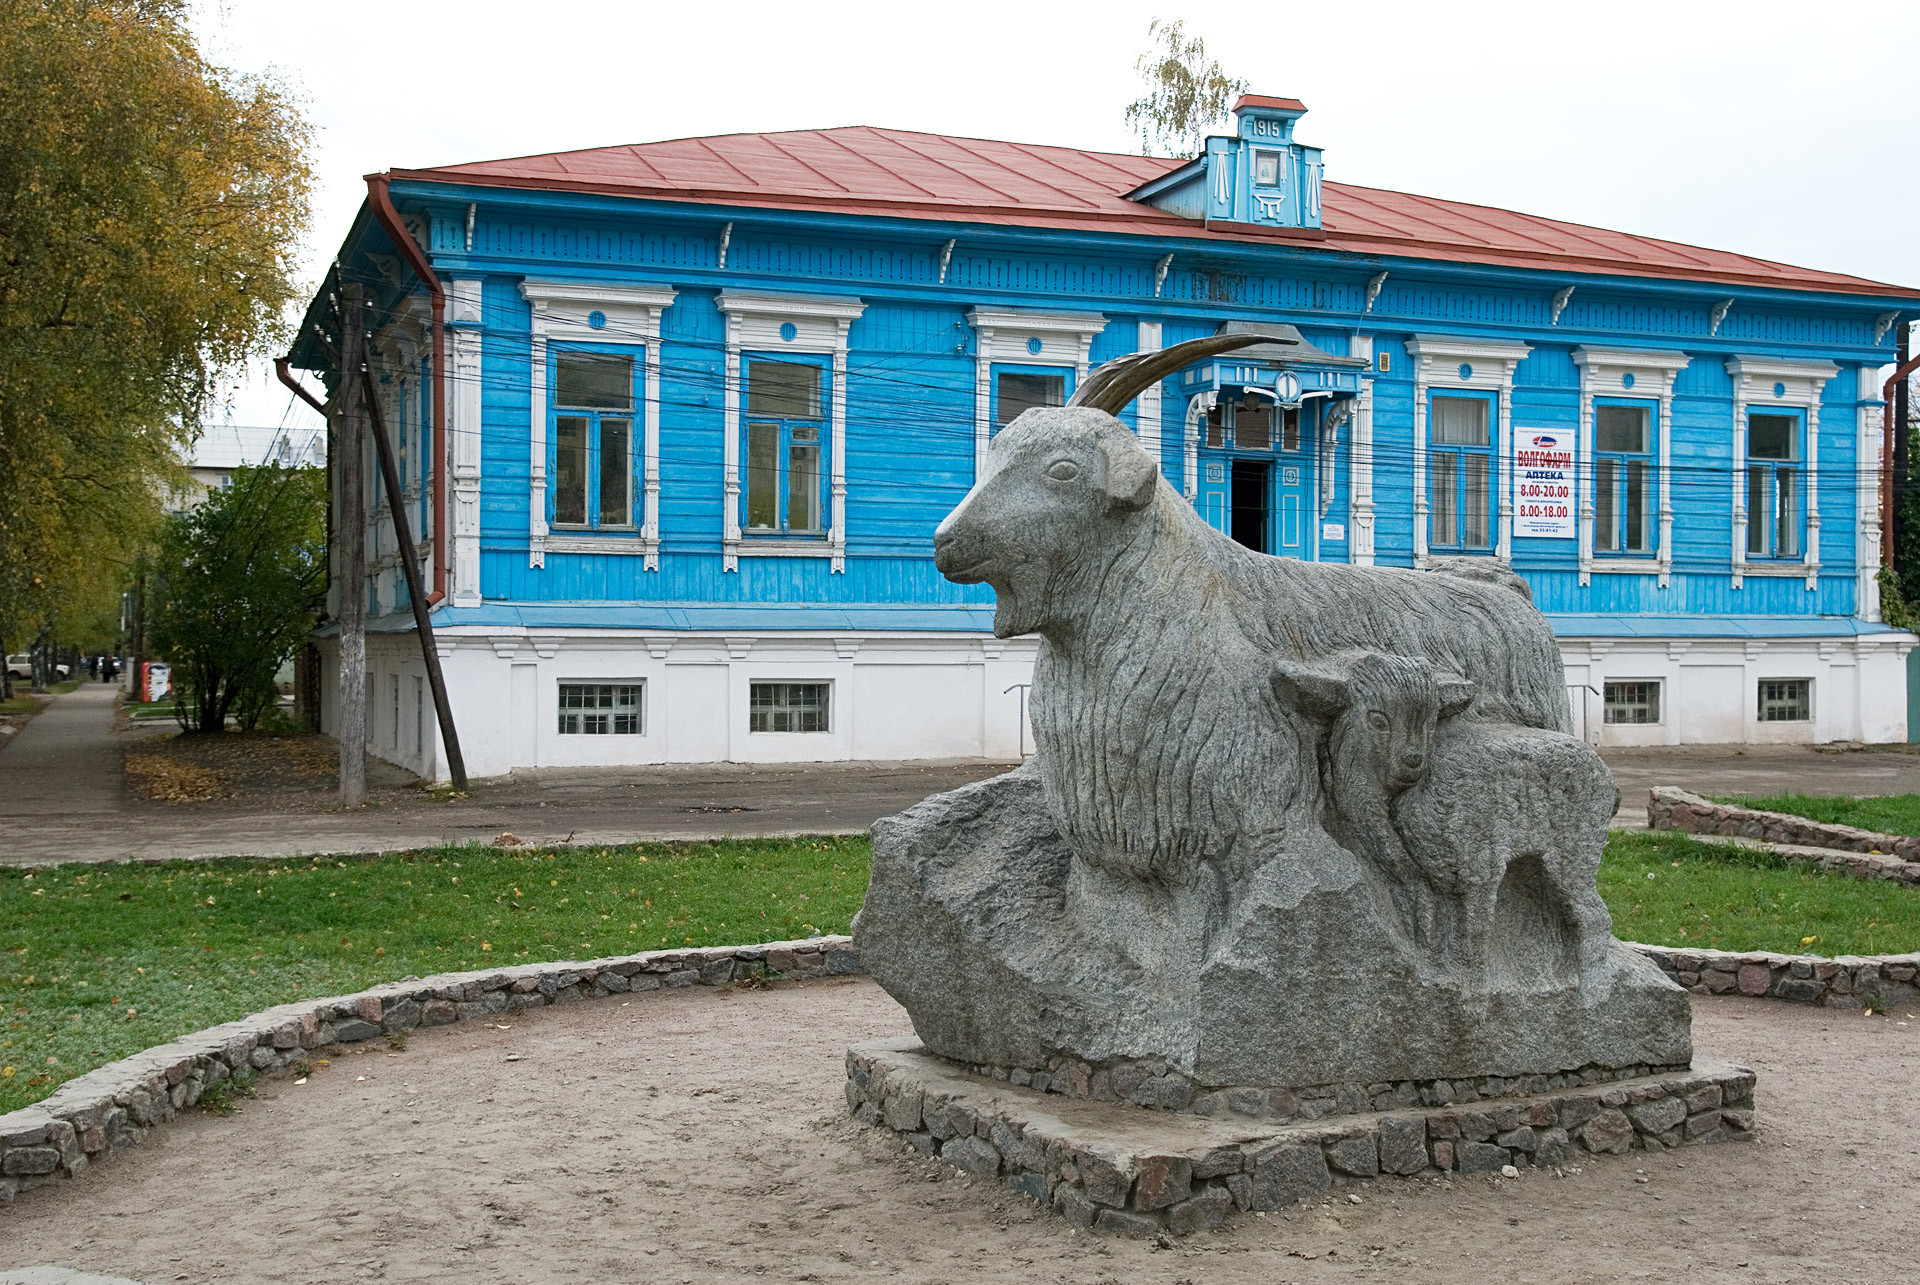 The monument to a goat in Uryupinsk